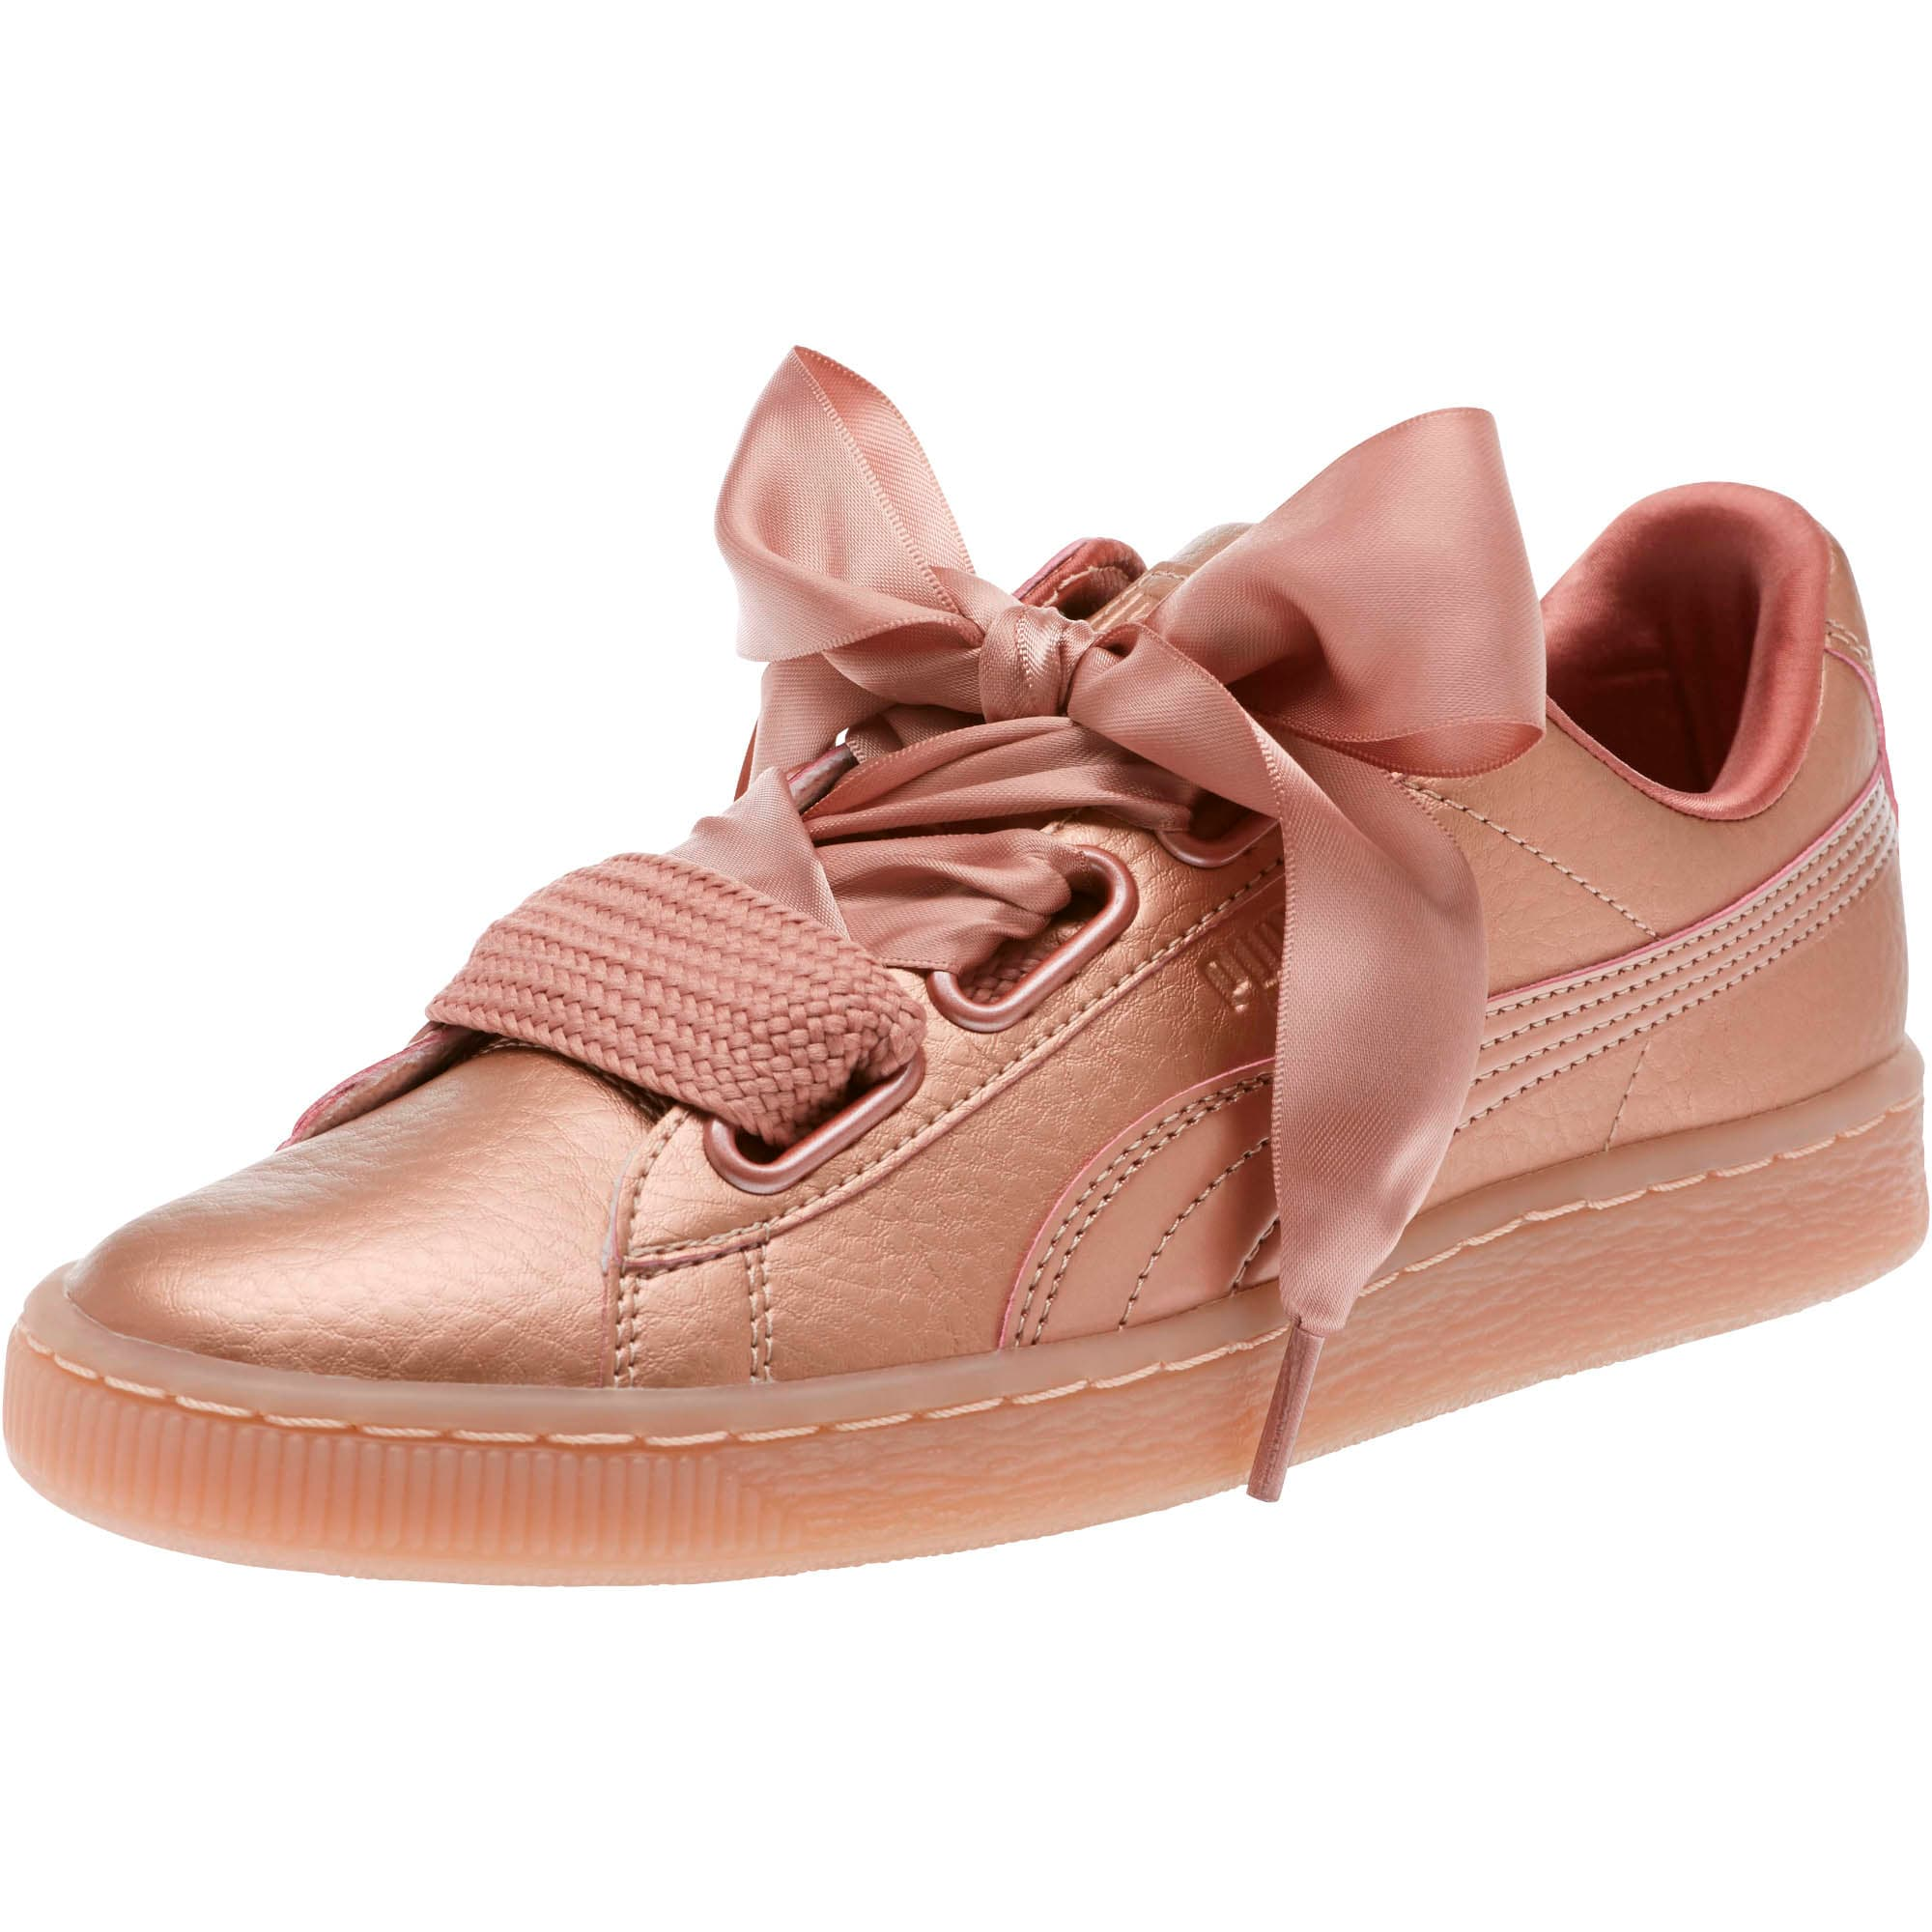 Sneakers Heart Copper Heart Copper Basket Women's Basket Women's XOPZikuT